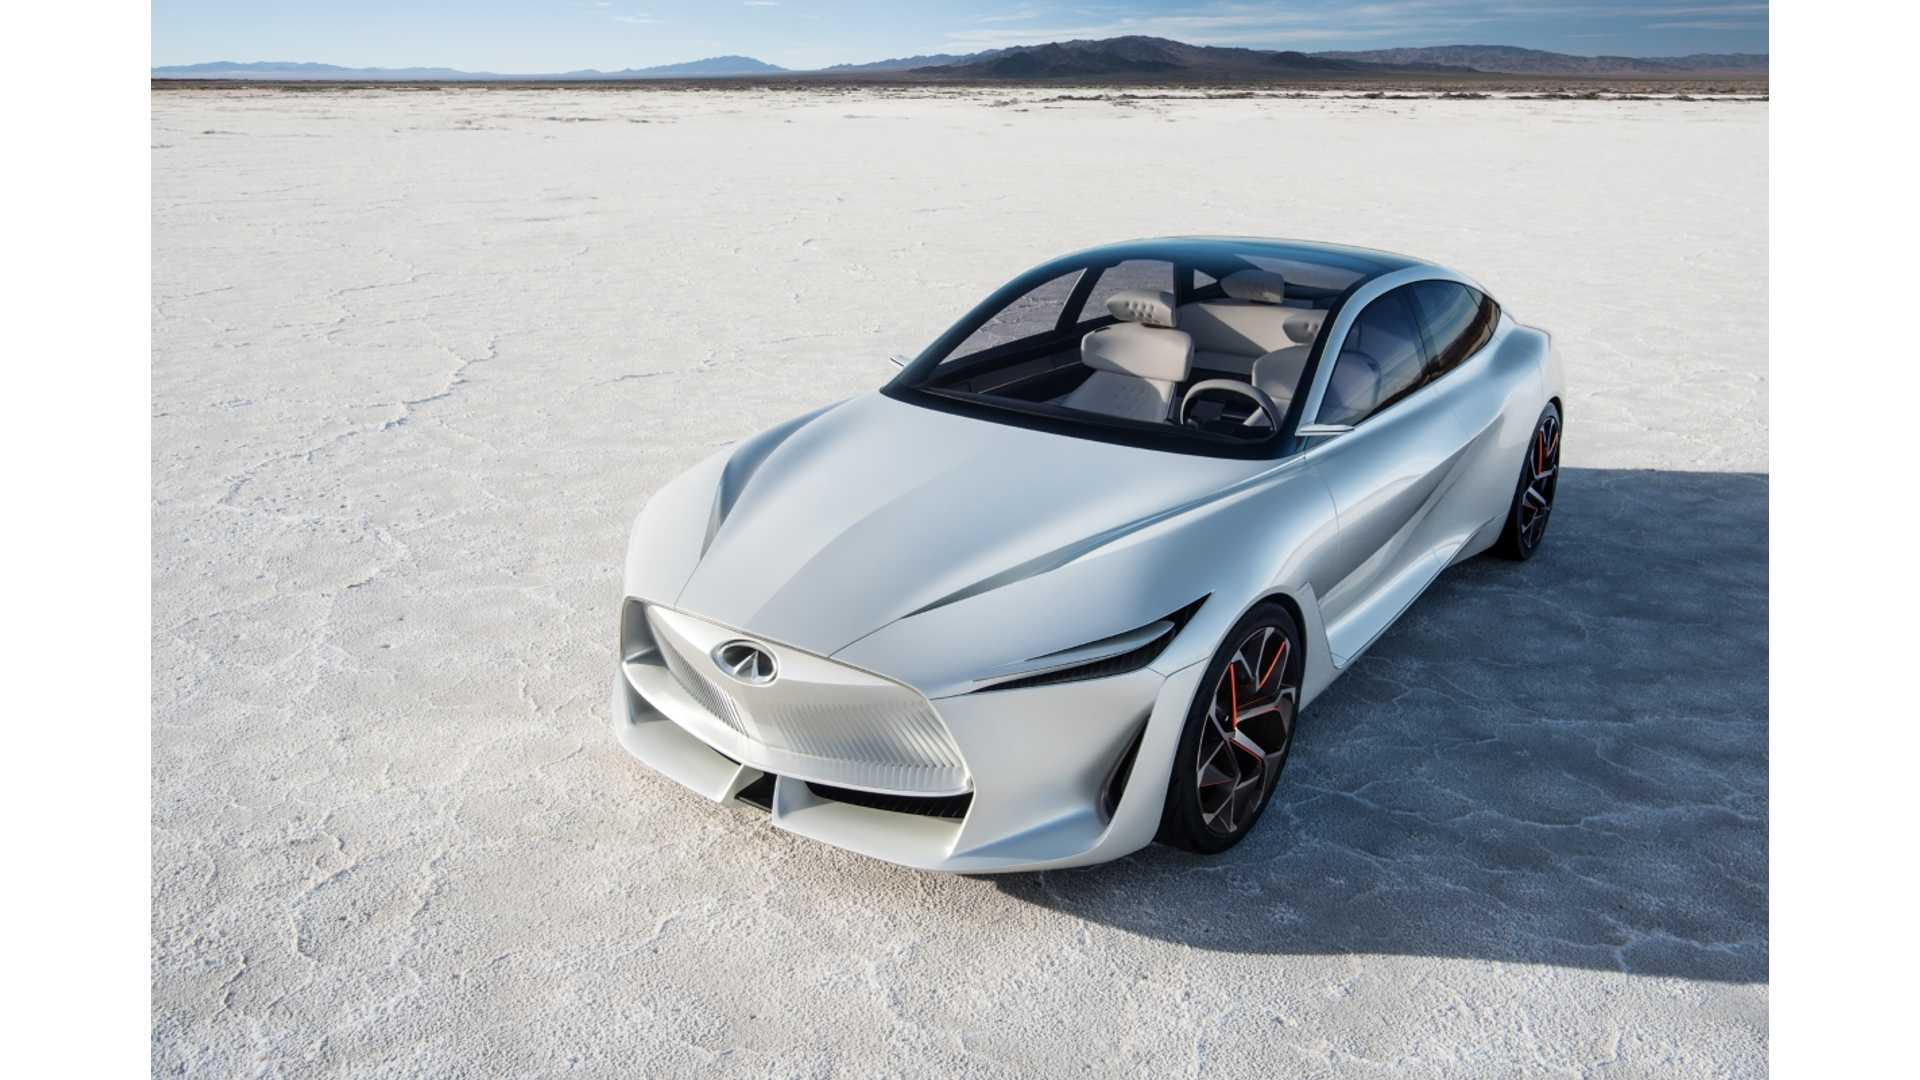 infiniti confirms first pure electric vehicle will launch